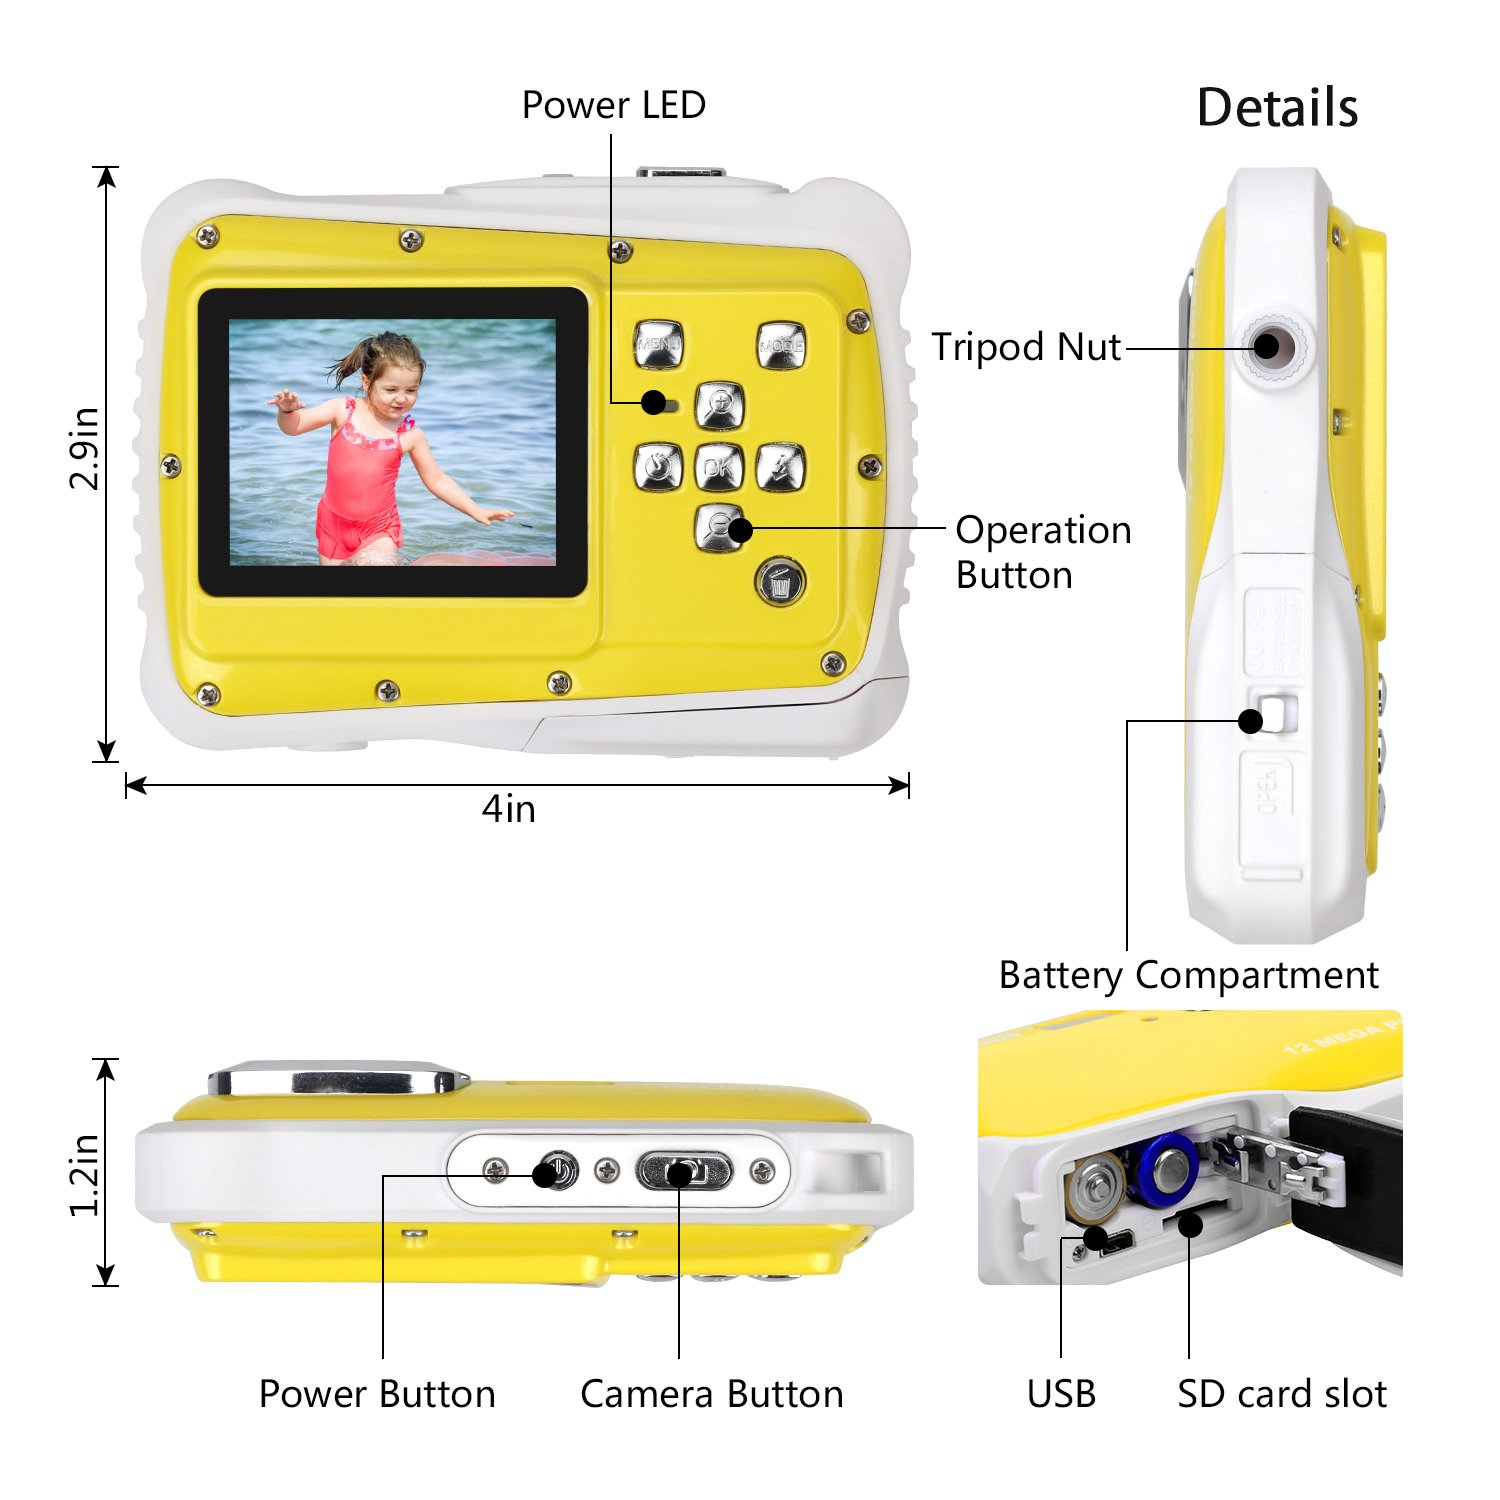 BOMEON Waterproof Camera for Kids Underwater Action Camera Camcorder with 12MP HD 8X Digital Zoom Flash Mic 2.0 Inch LCD Display with 8G SD Card 3 Non-Rechargeable Batteries Included by BOMEON (Image #4)